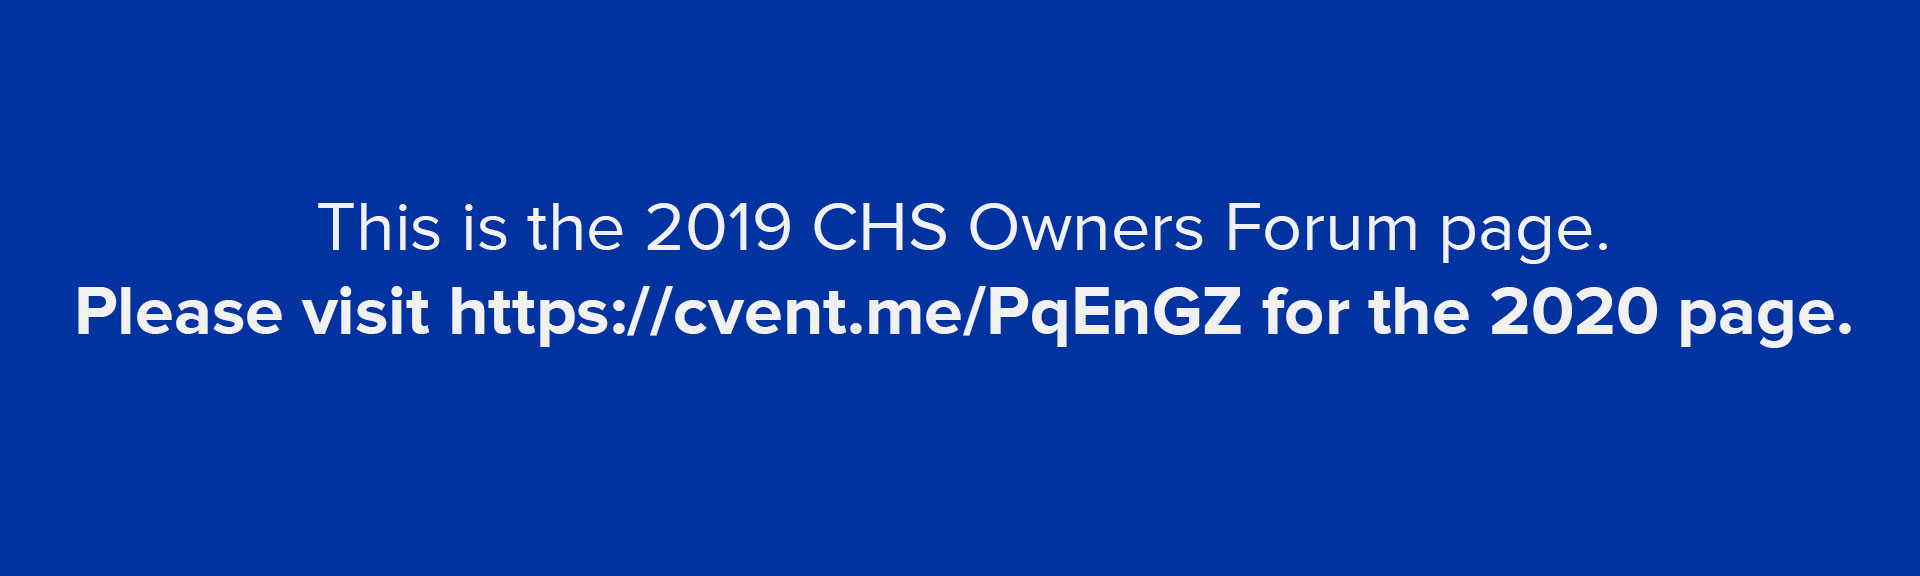 2019 CHS Owners Forums